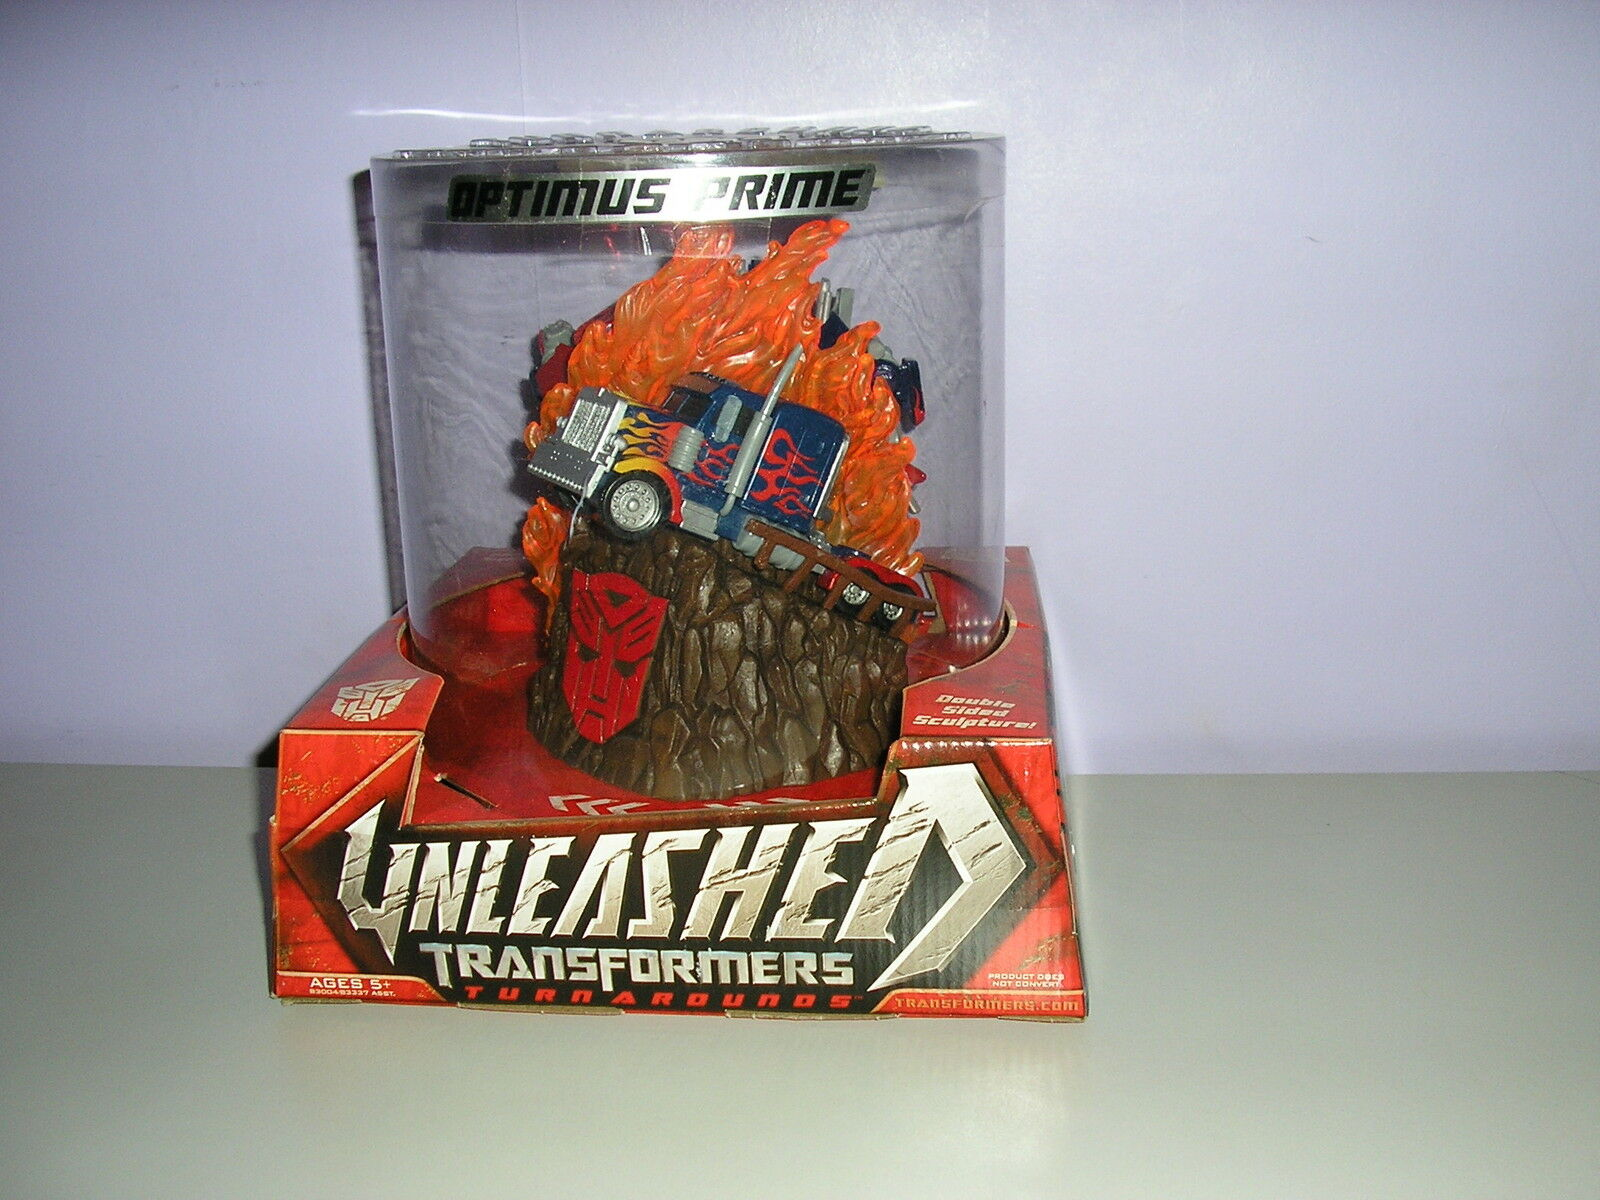 Die entfesselte optimus prime turnaround skulptur new in box